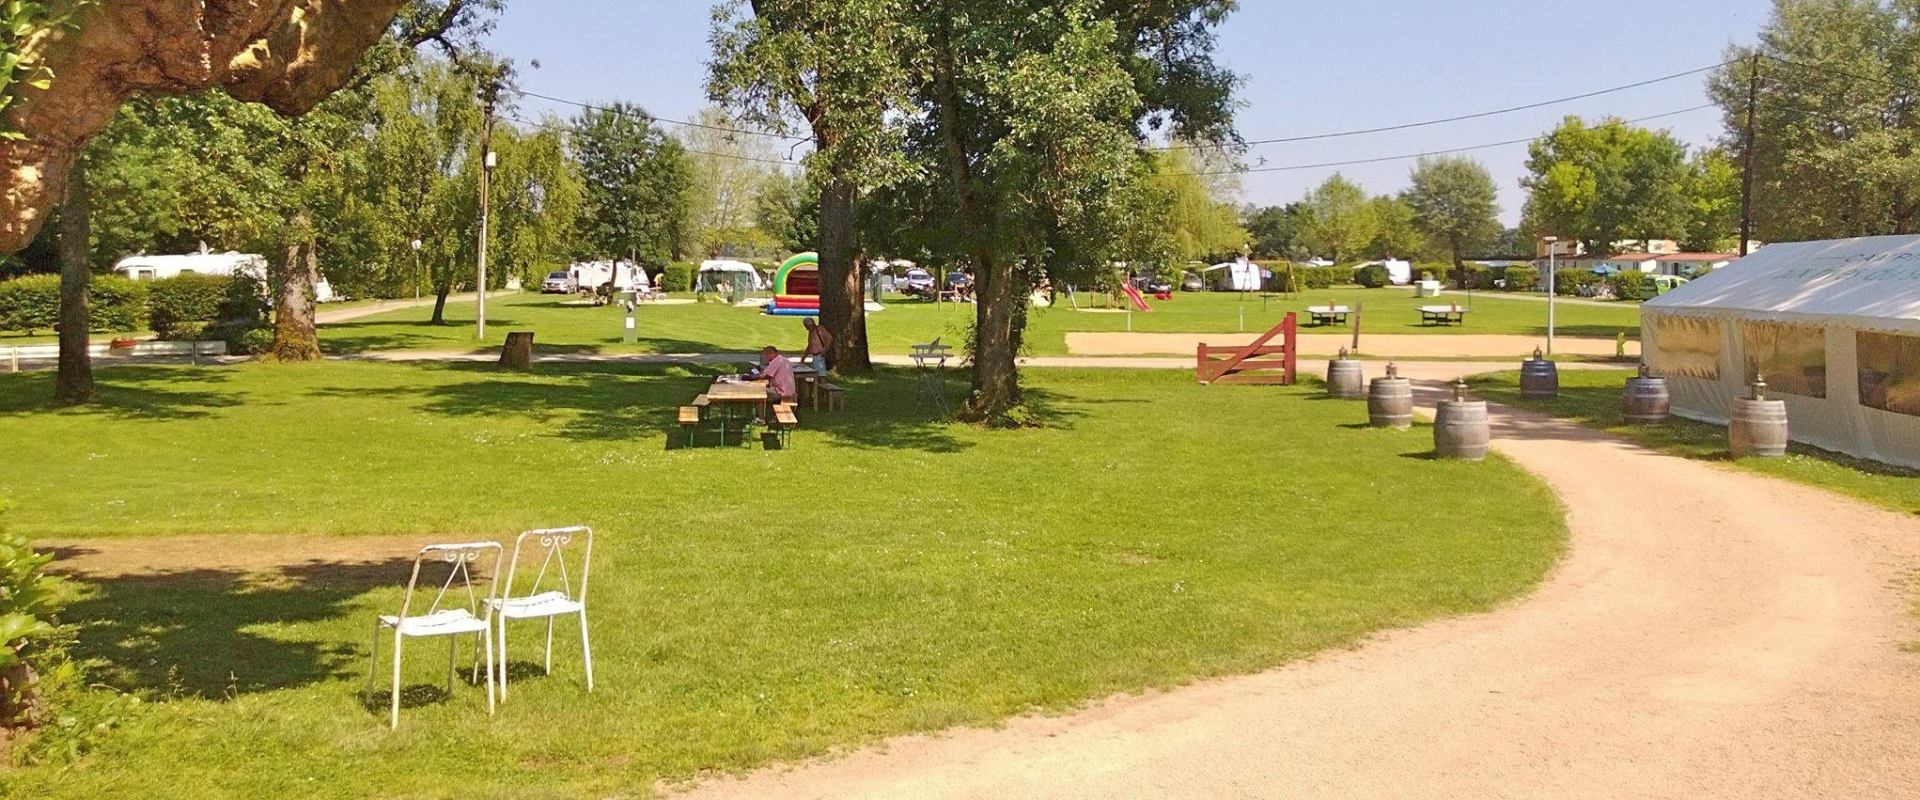 Aux Rives du Soleil campsite in Bourgogne and the Ain in France